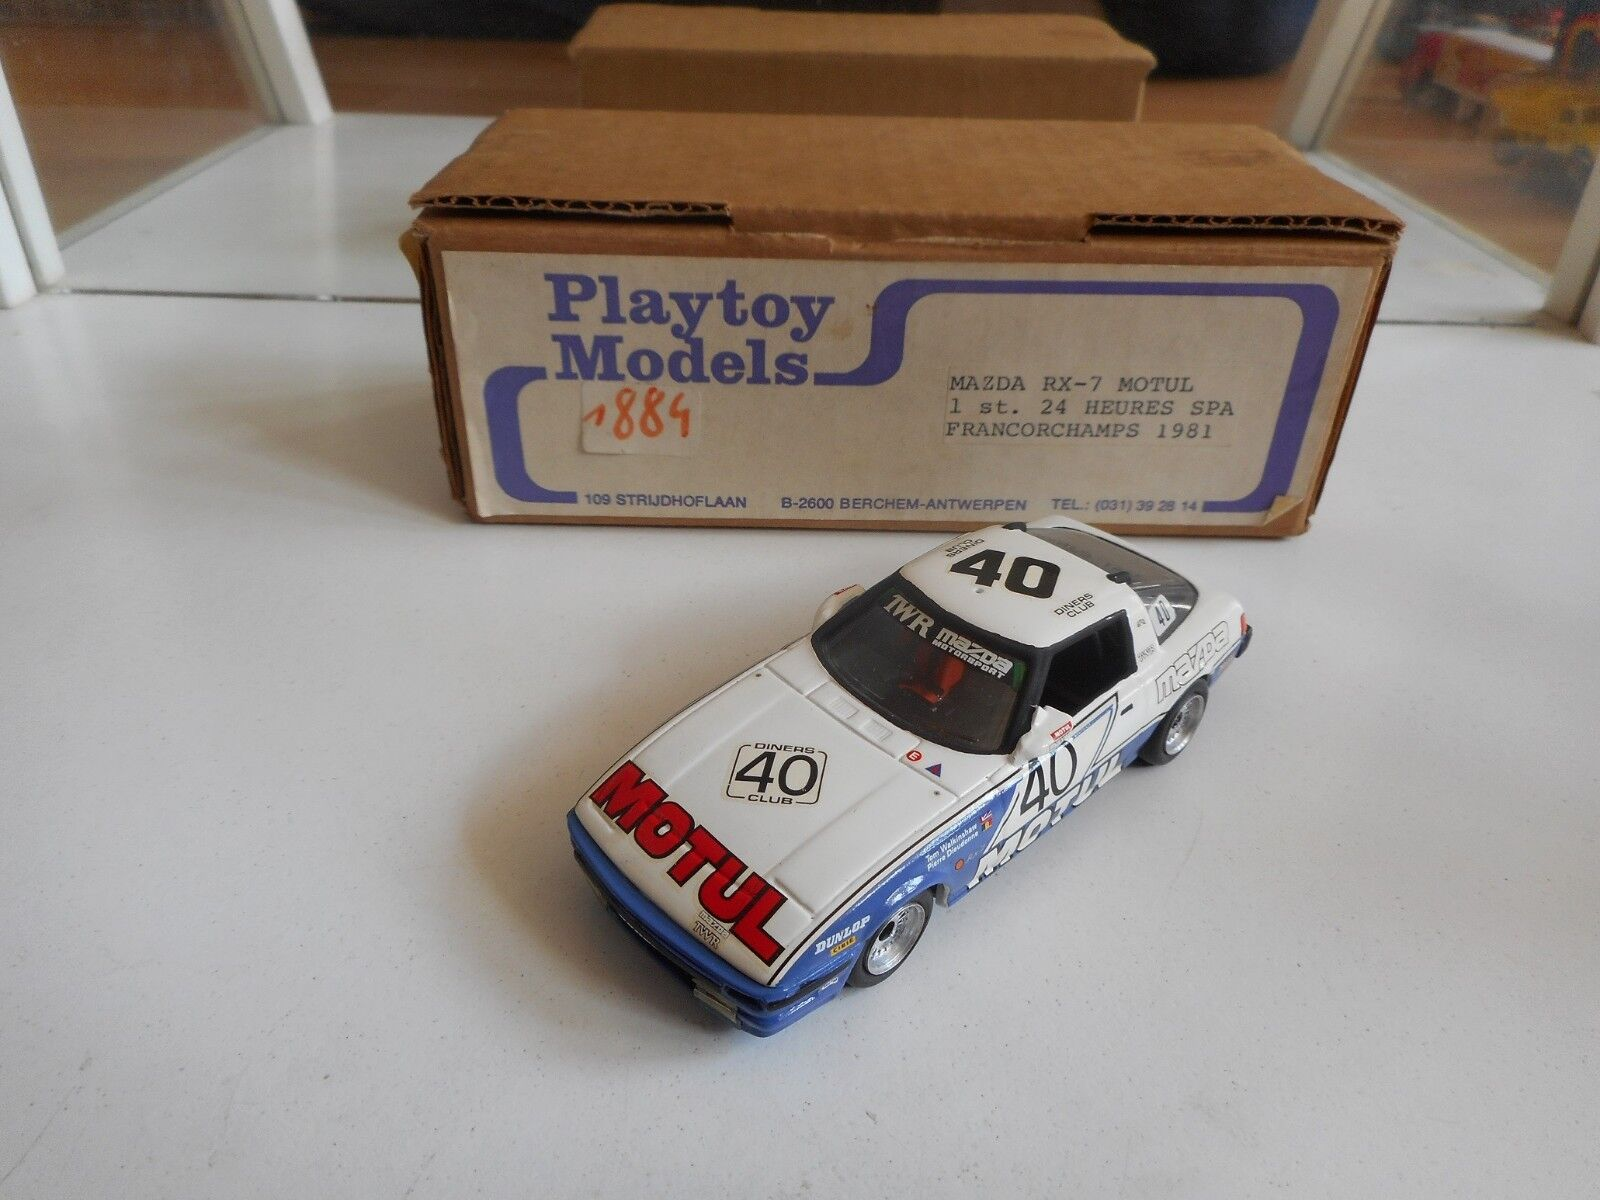 Handbuilt Model Playtoy Mazda RX7 Motul 1st 24 hr Spa 2018 - Blanco on 143 - Box